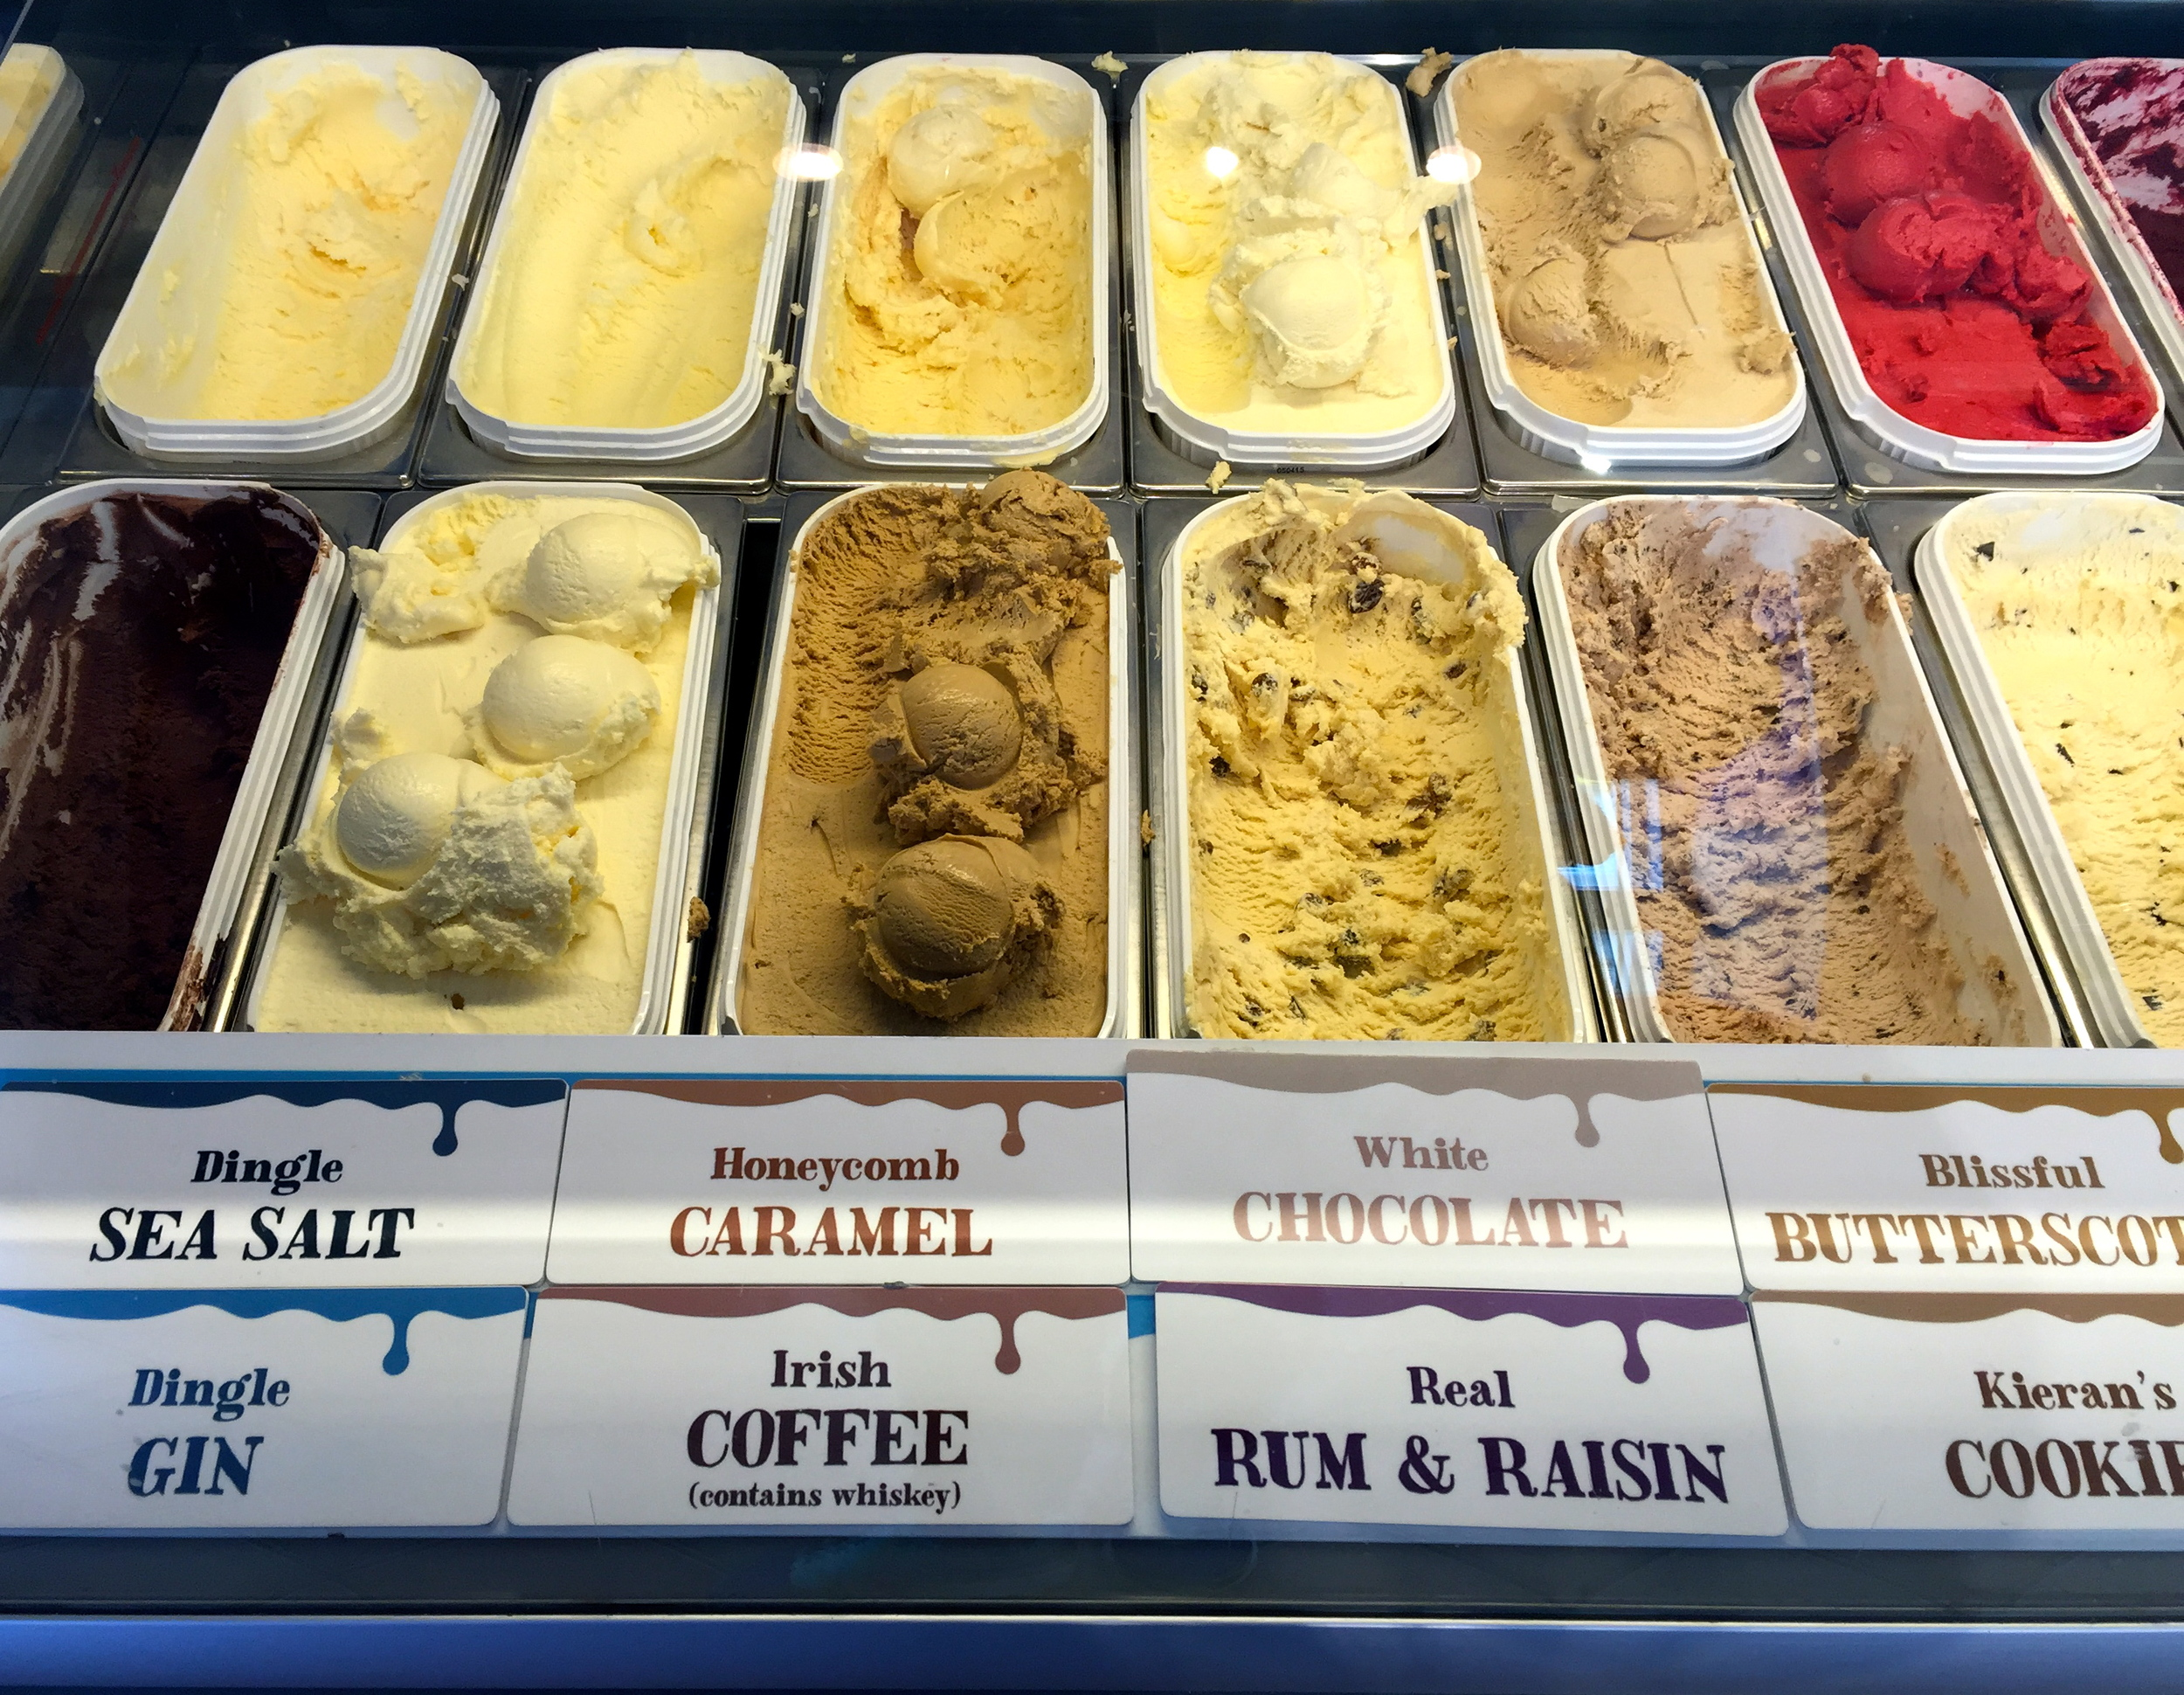 The must try flavour combo: Dingle Sea Salt and Blissful Butterscotch! Murphy's Ice Cream, Dingle, Co. Kerry, Ireland.